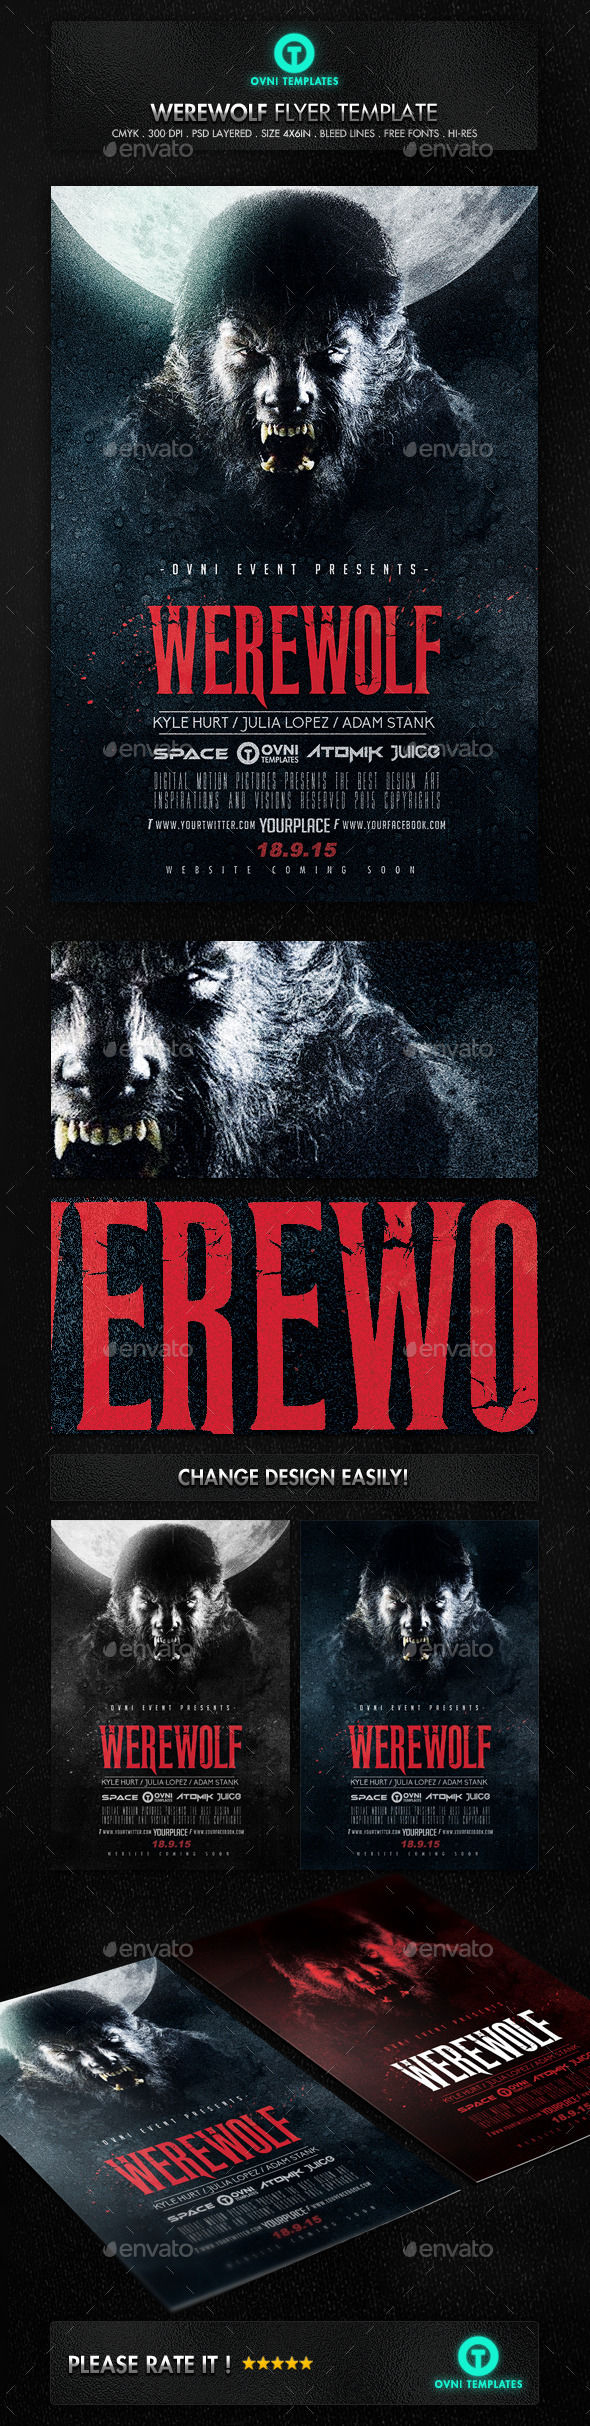 Werewolf Dark Horror Movie Flyer Poster Template by OVNI-TEMPLATES (Halloween party flyer)